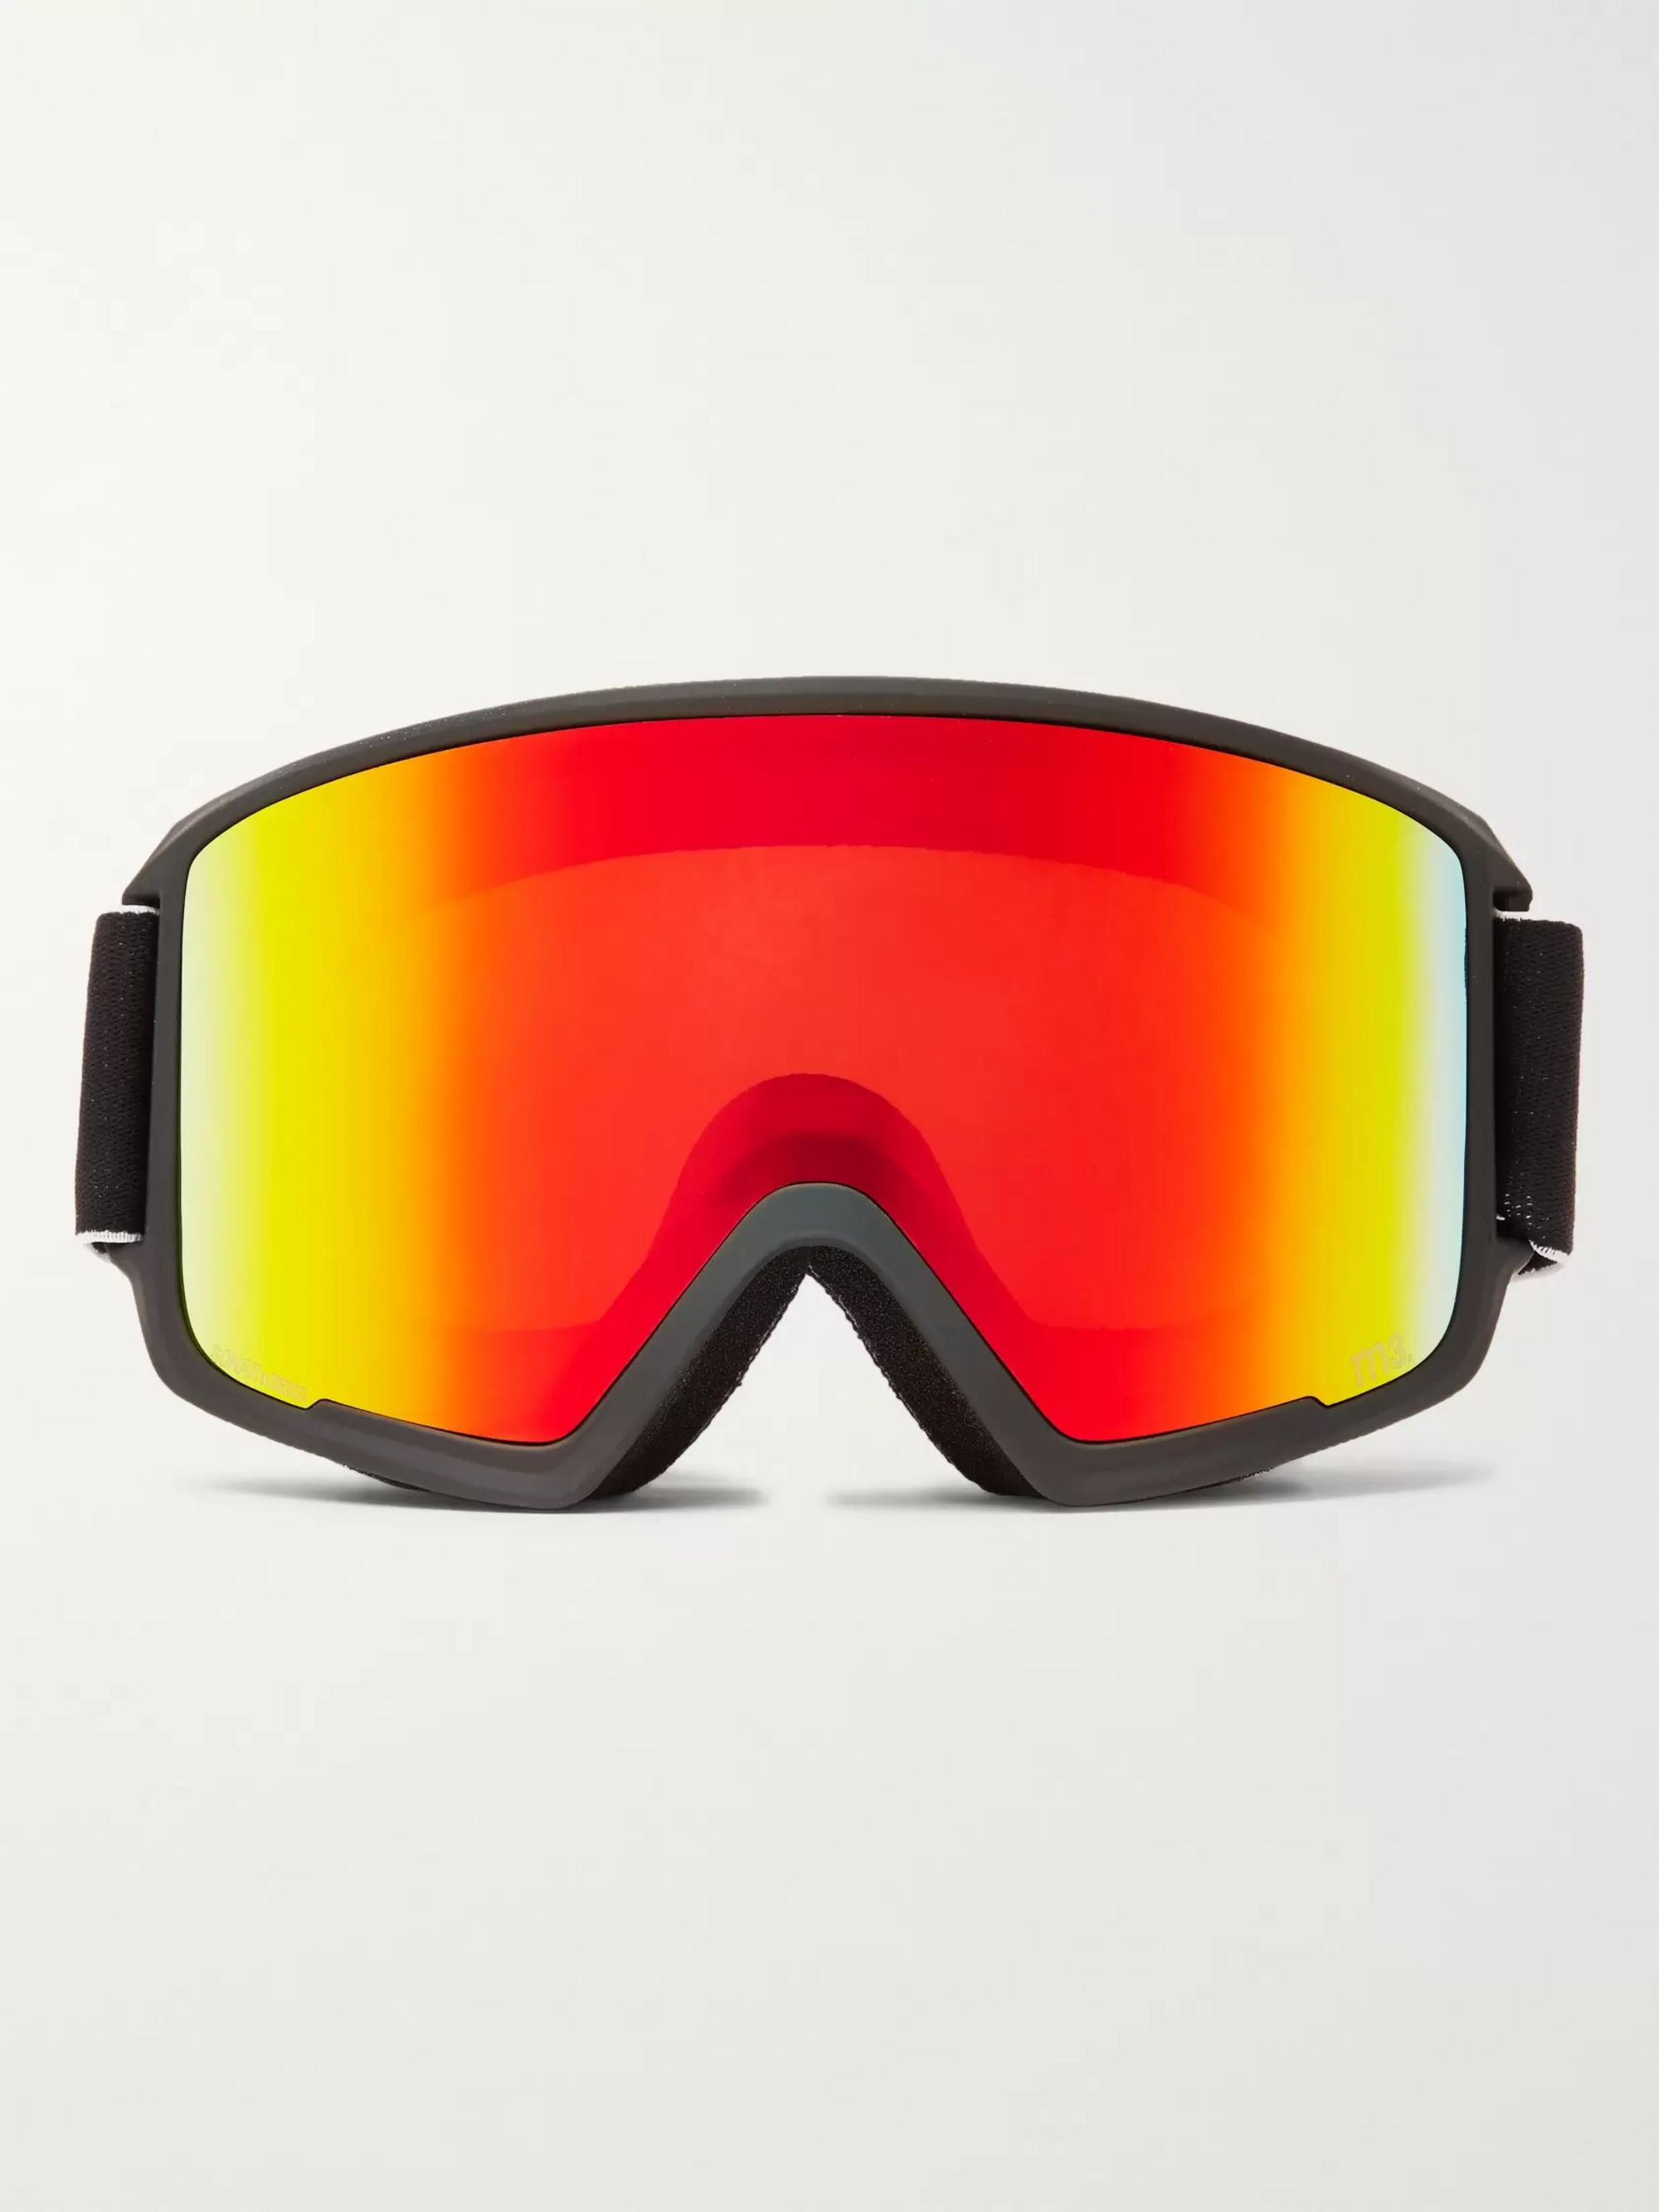 Anon M3 Ski Goggles and Stretch-Jersey Face Mask